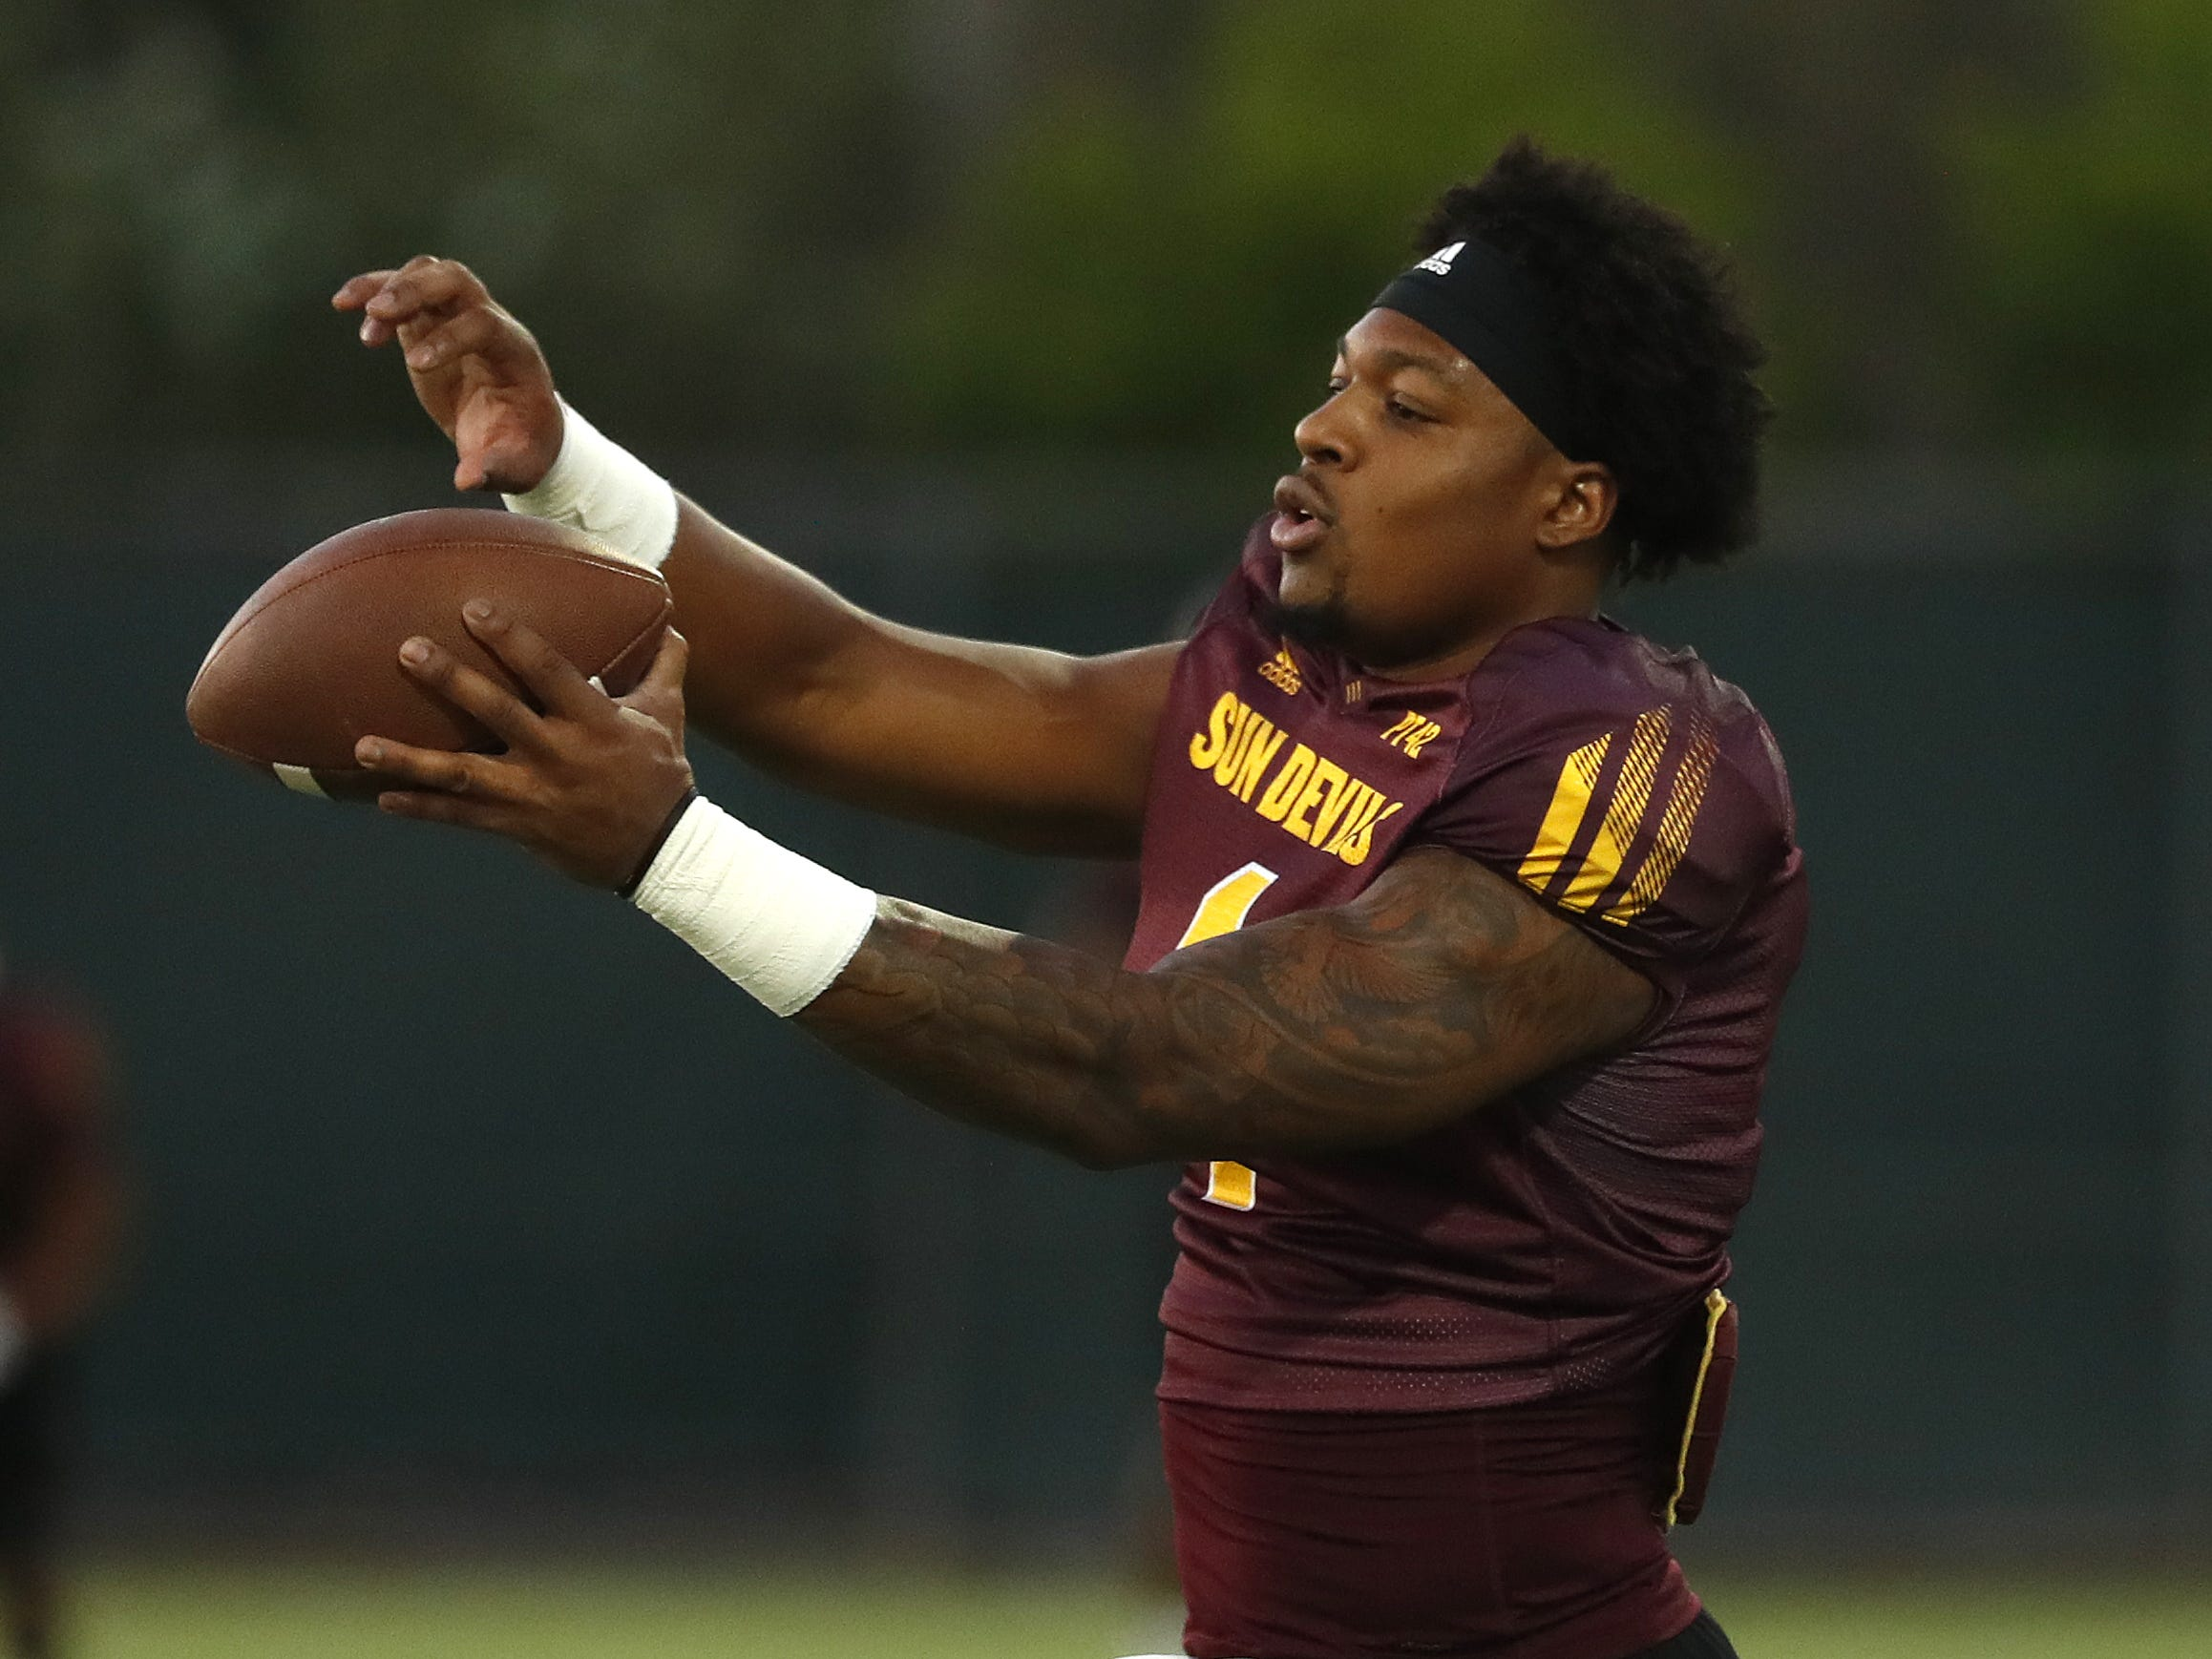 ASU's N'Keal Harry (1) makes a one-handed juggling catch during a practice at Kajikawa Football Practice Fields in Tempe, Ariz. on Aug. 6, 2018.